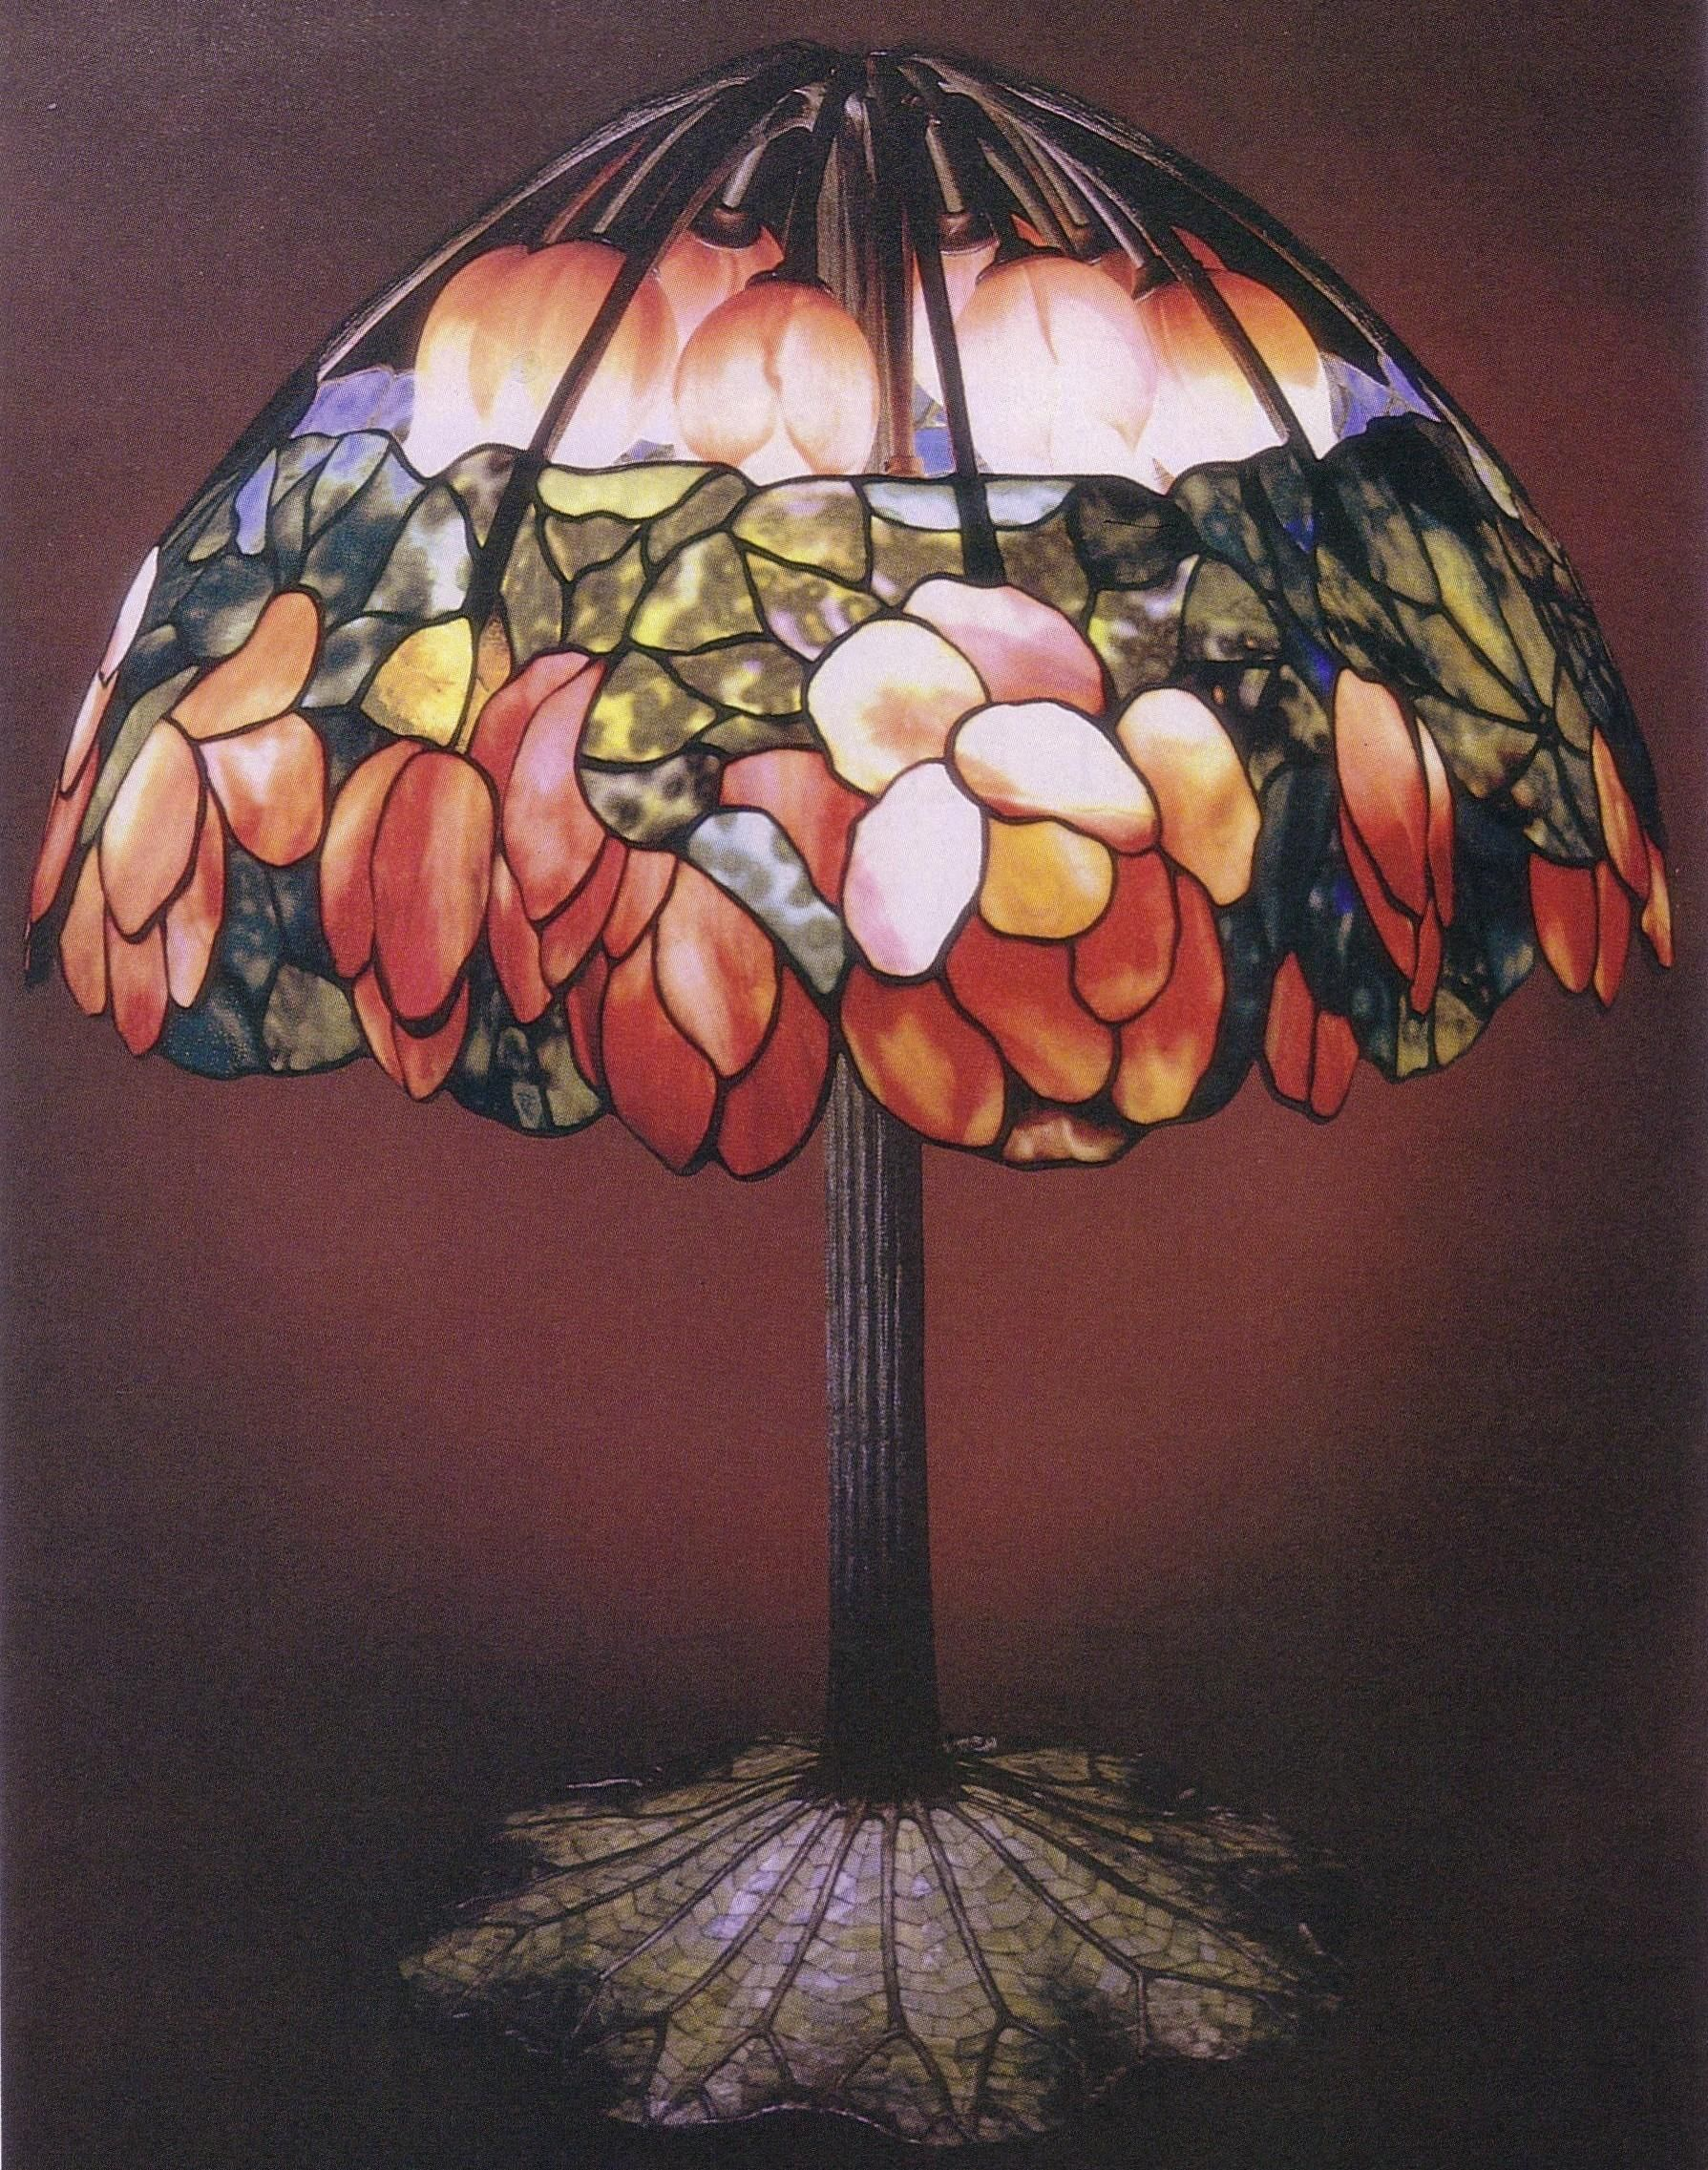 important lamps en lr lamp glass stained auctions for s sotheby sale tiffany